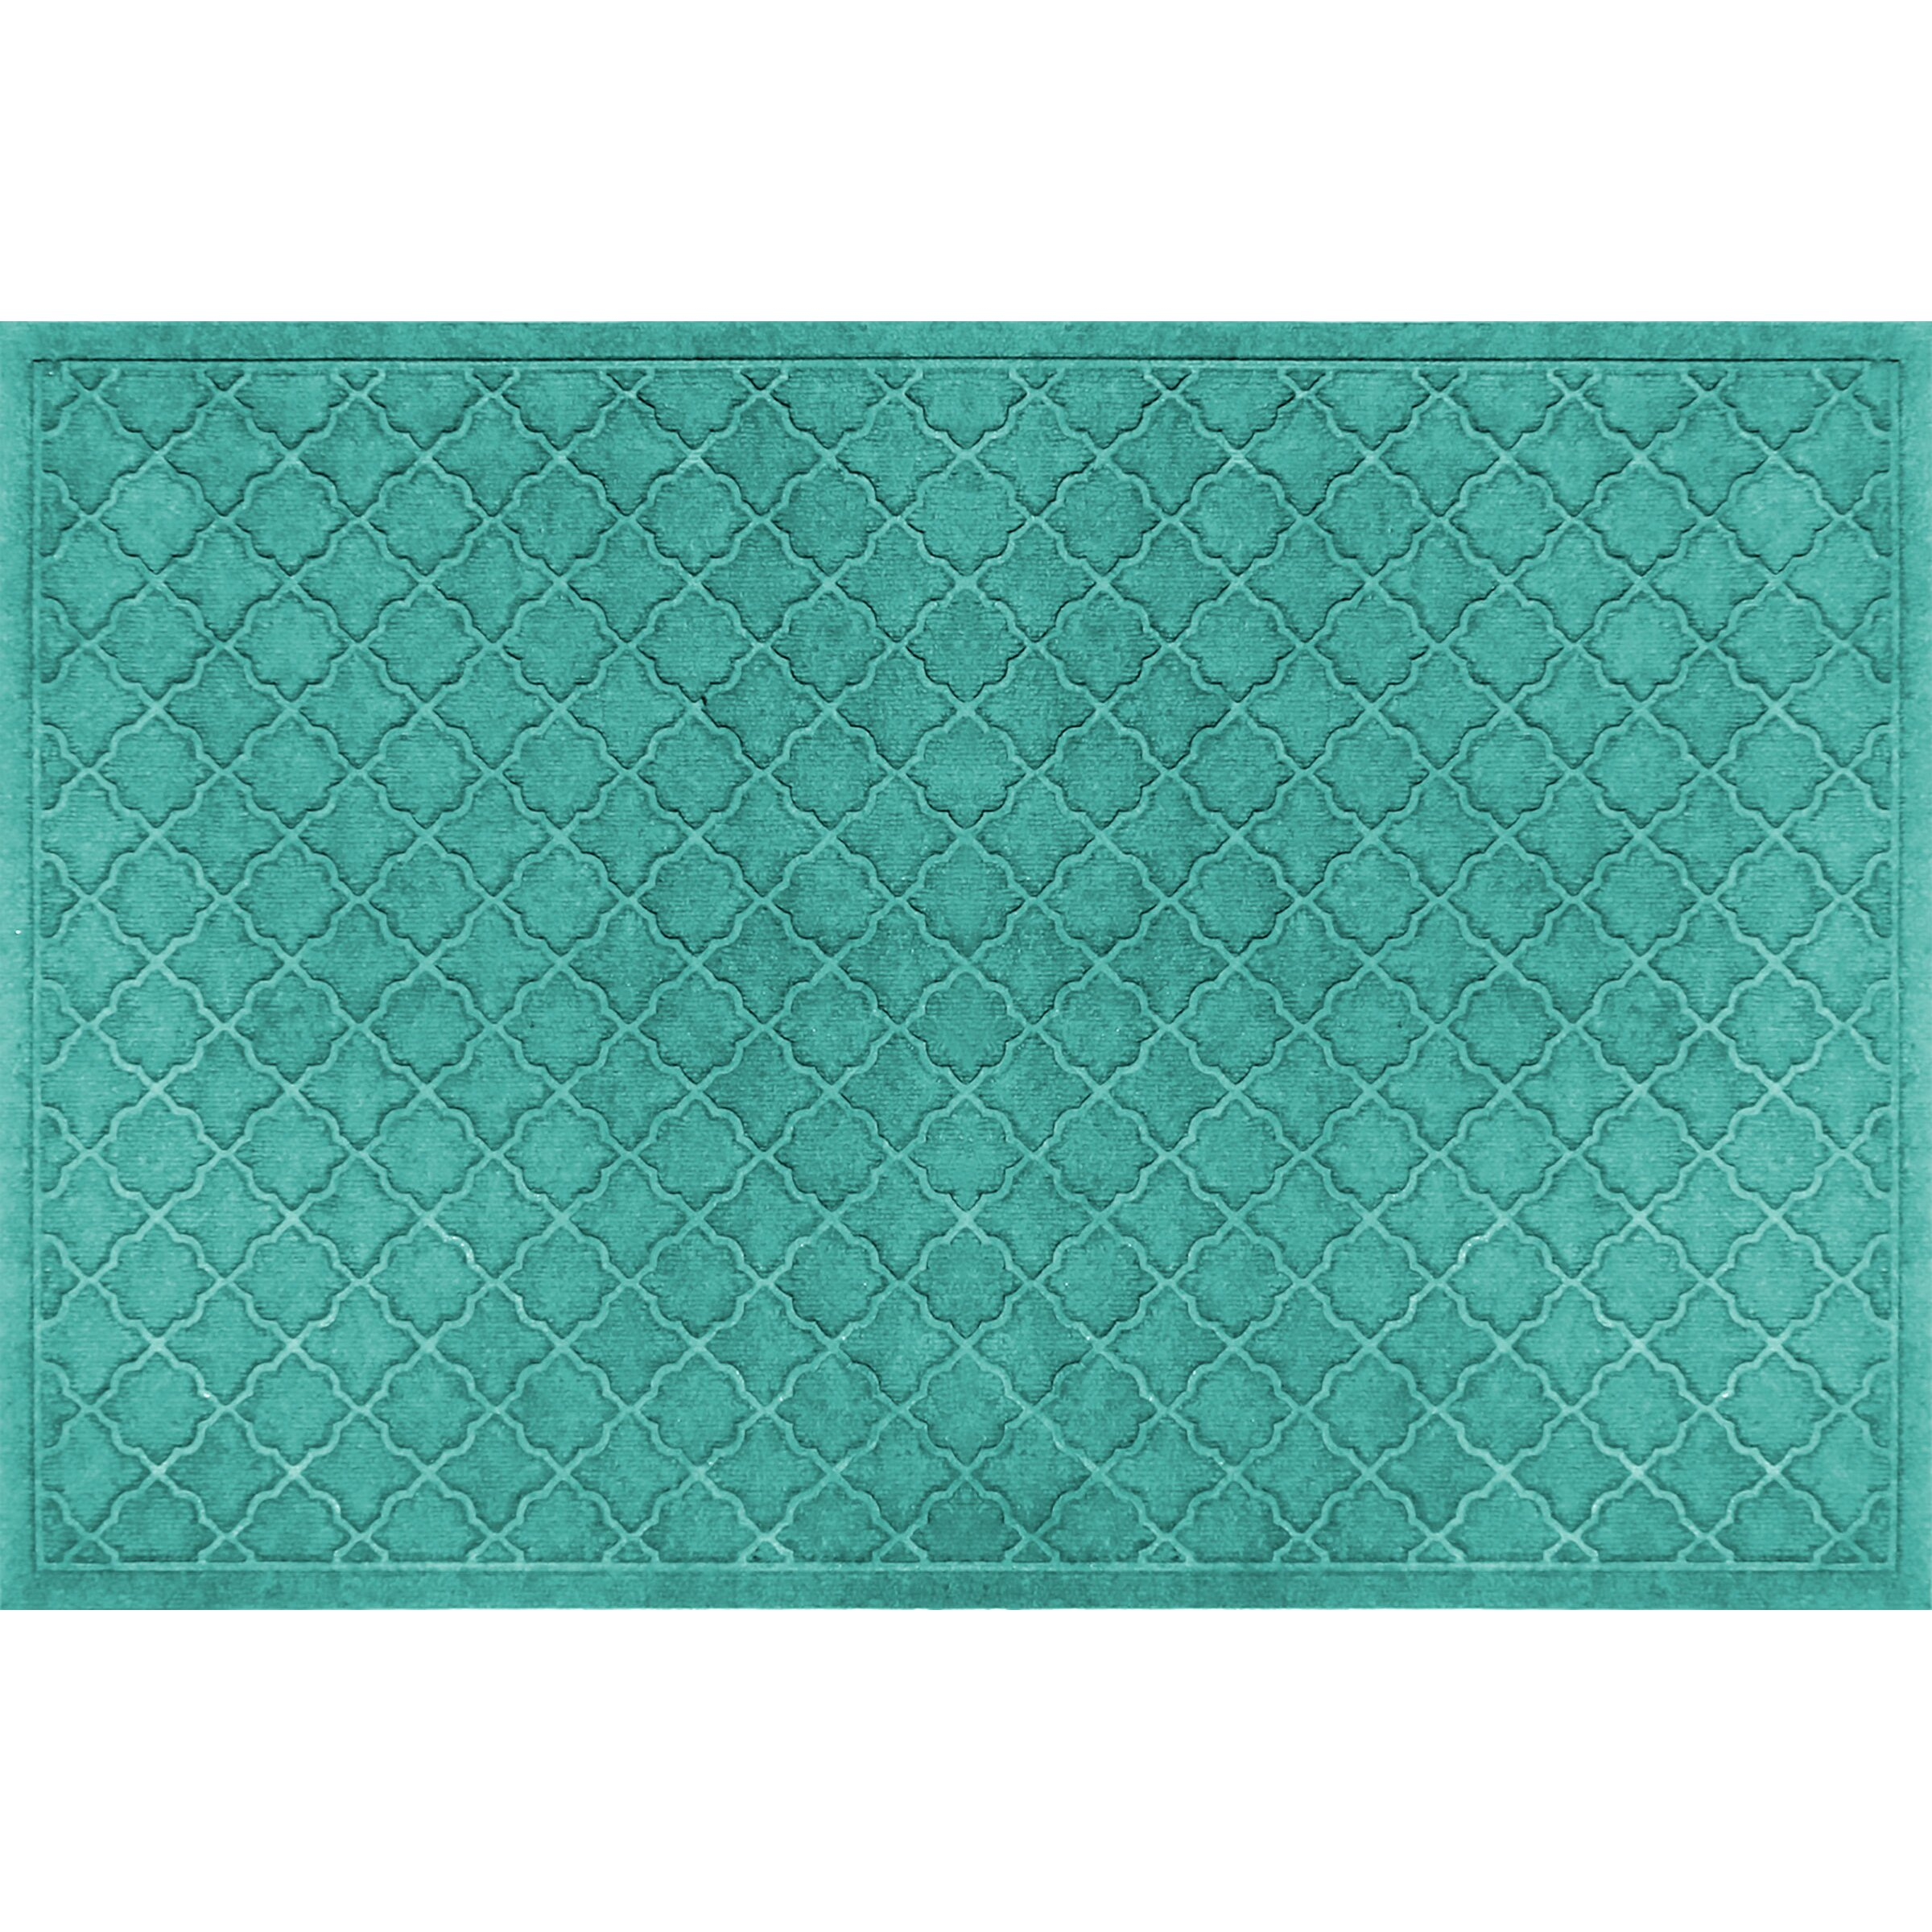 modern doormat   gallery for gt modern doormatrubber cal  - modern doormat gallery for gt modern doormat